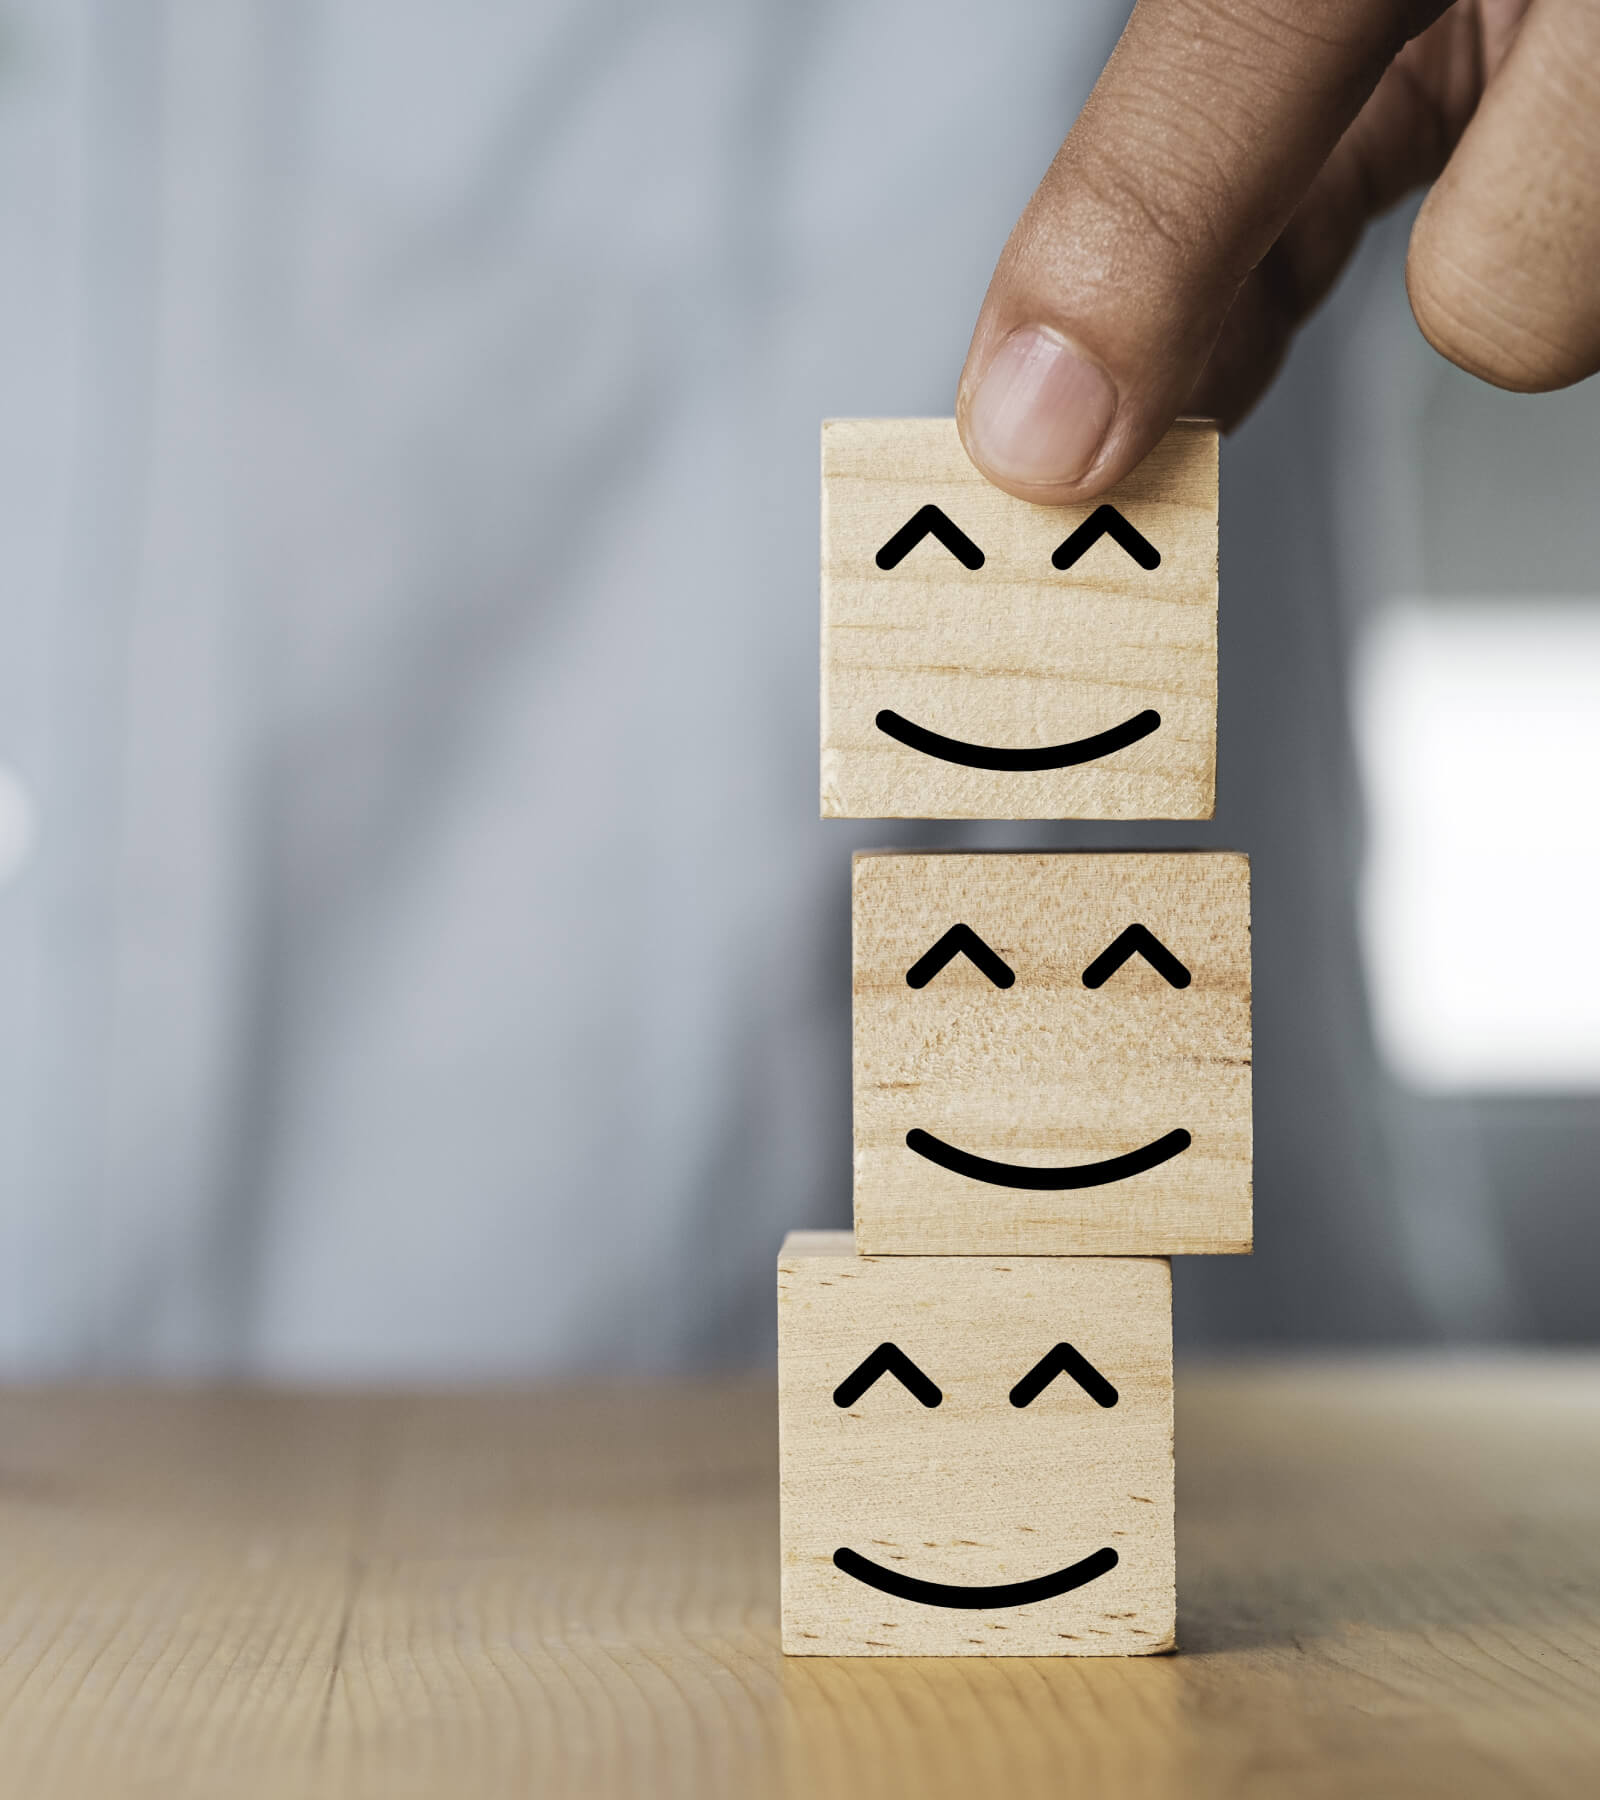 A smiling box with a smile which indicates customer satisfaction